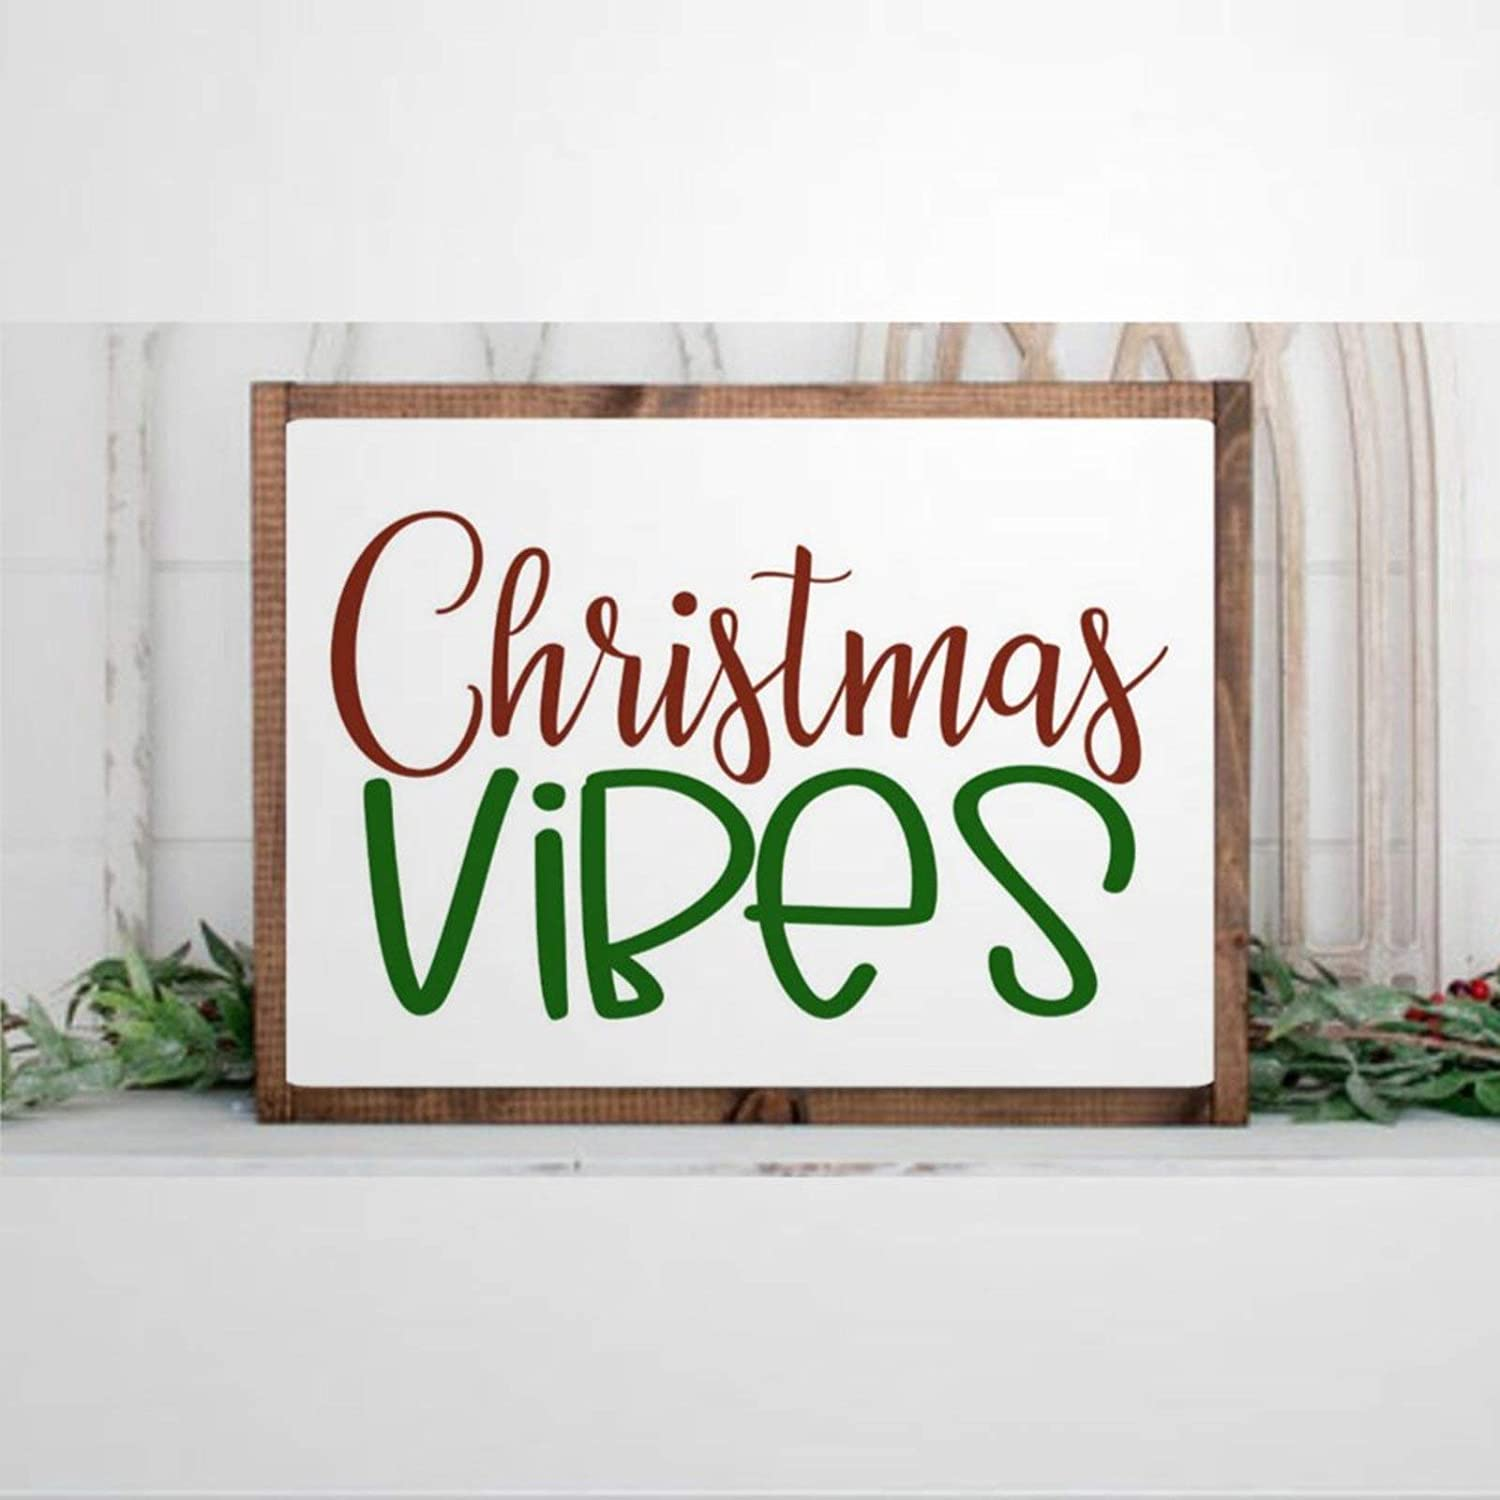 DONL9BAUER Christmas Vibes Framed Sign Wood Sign Holiday Spirit Wood Sign Christmas Decor Rustic Wall Hanging Home Decor for Living Room Wall Art